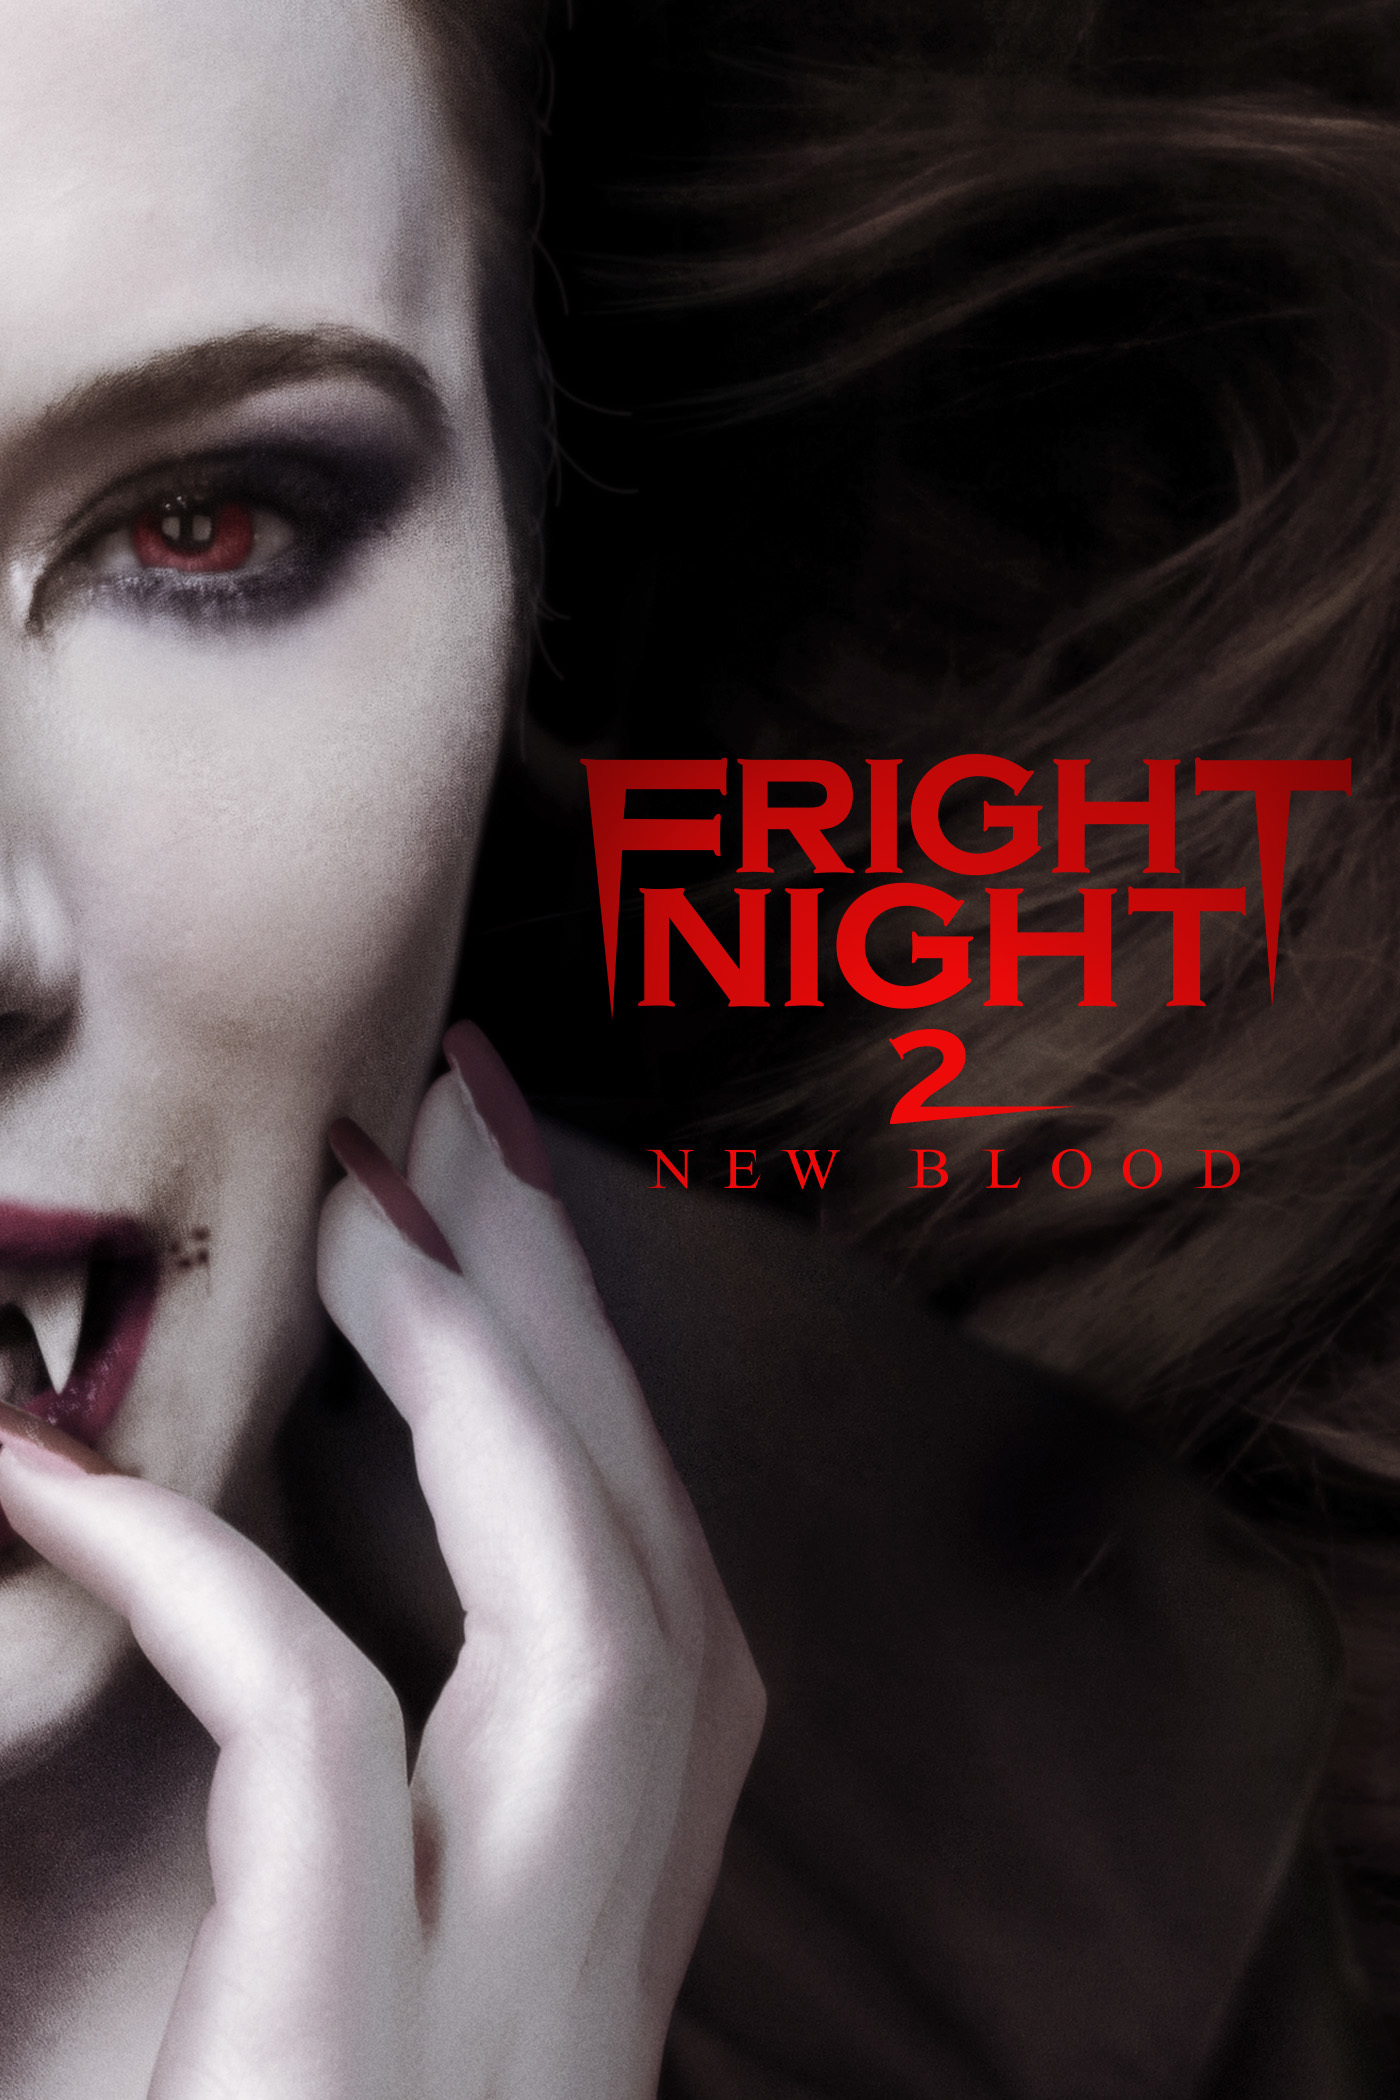 Fright Night 2: New Blood poster image